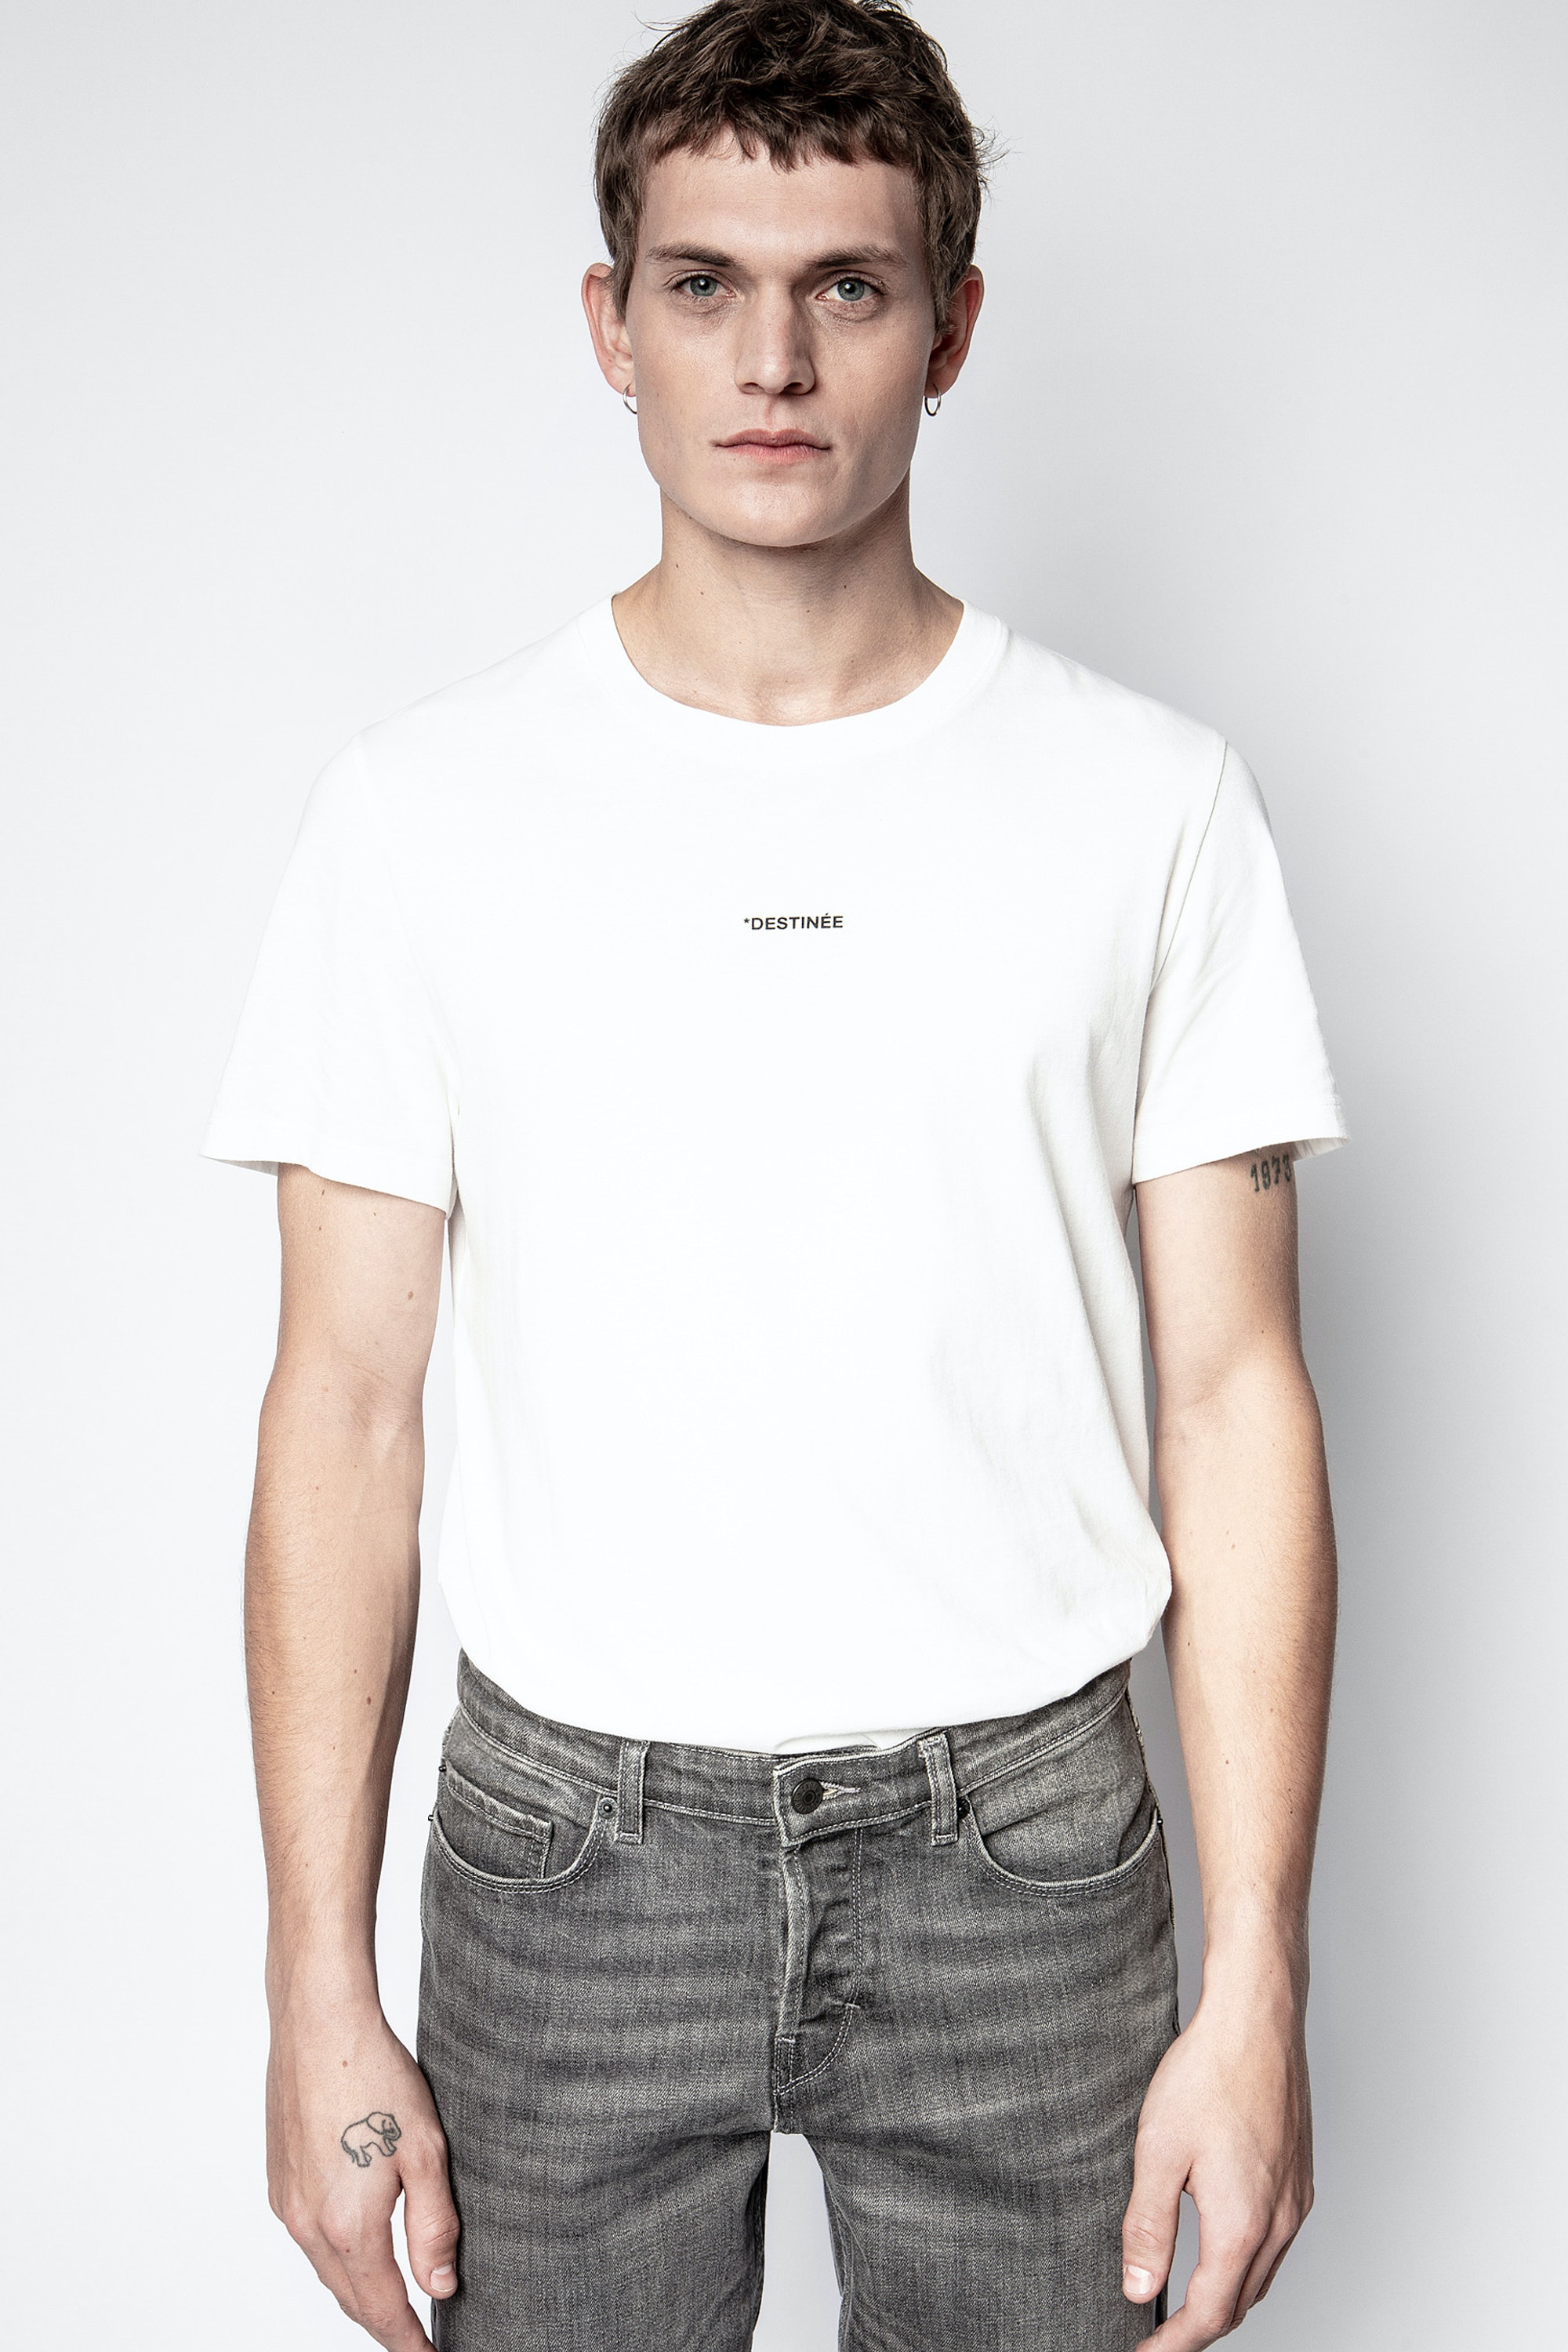 Ted Photoprint Destinée T-shirt